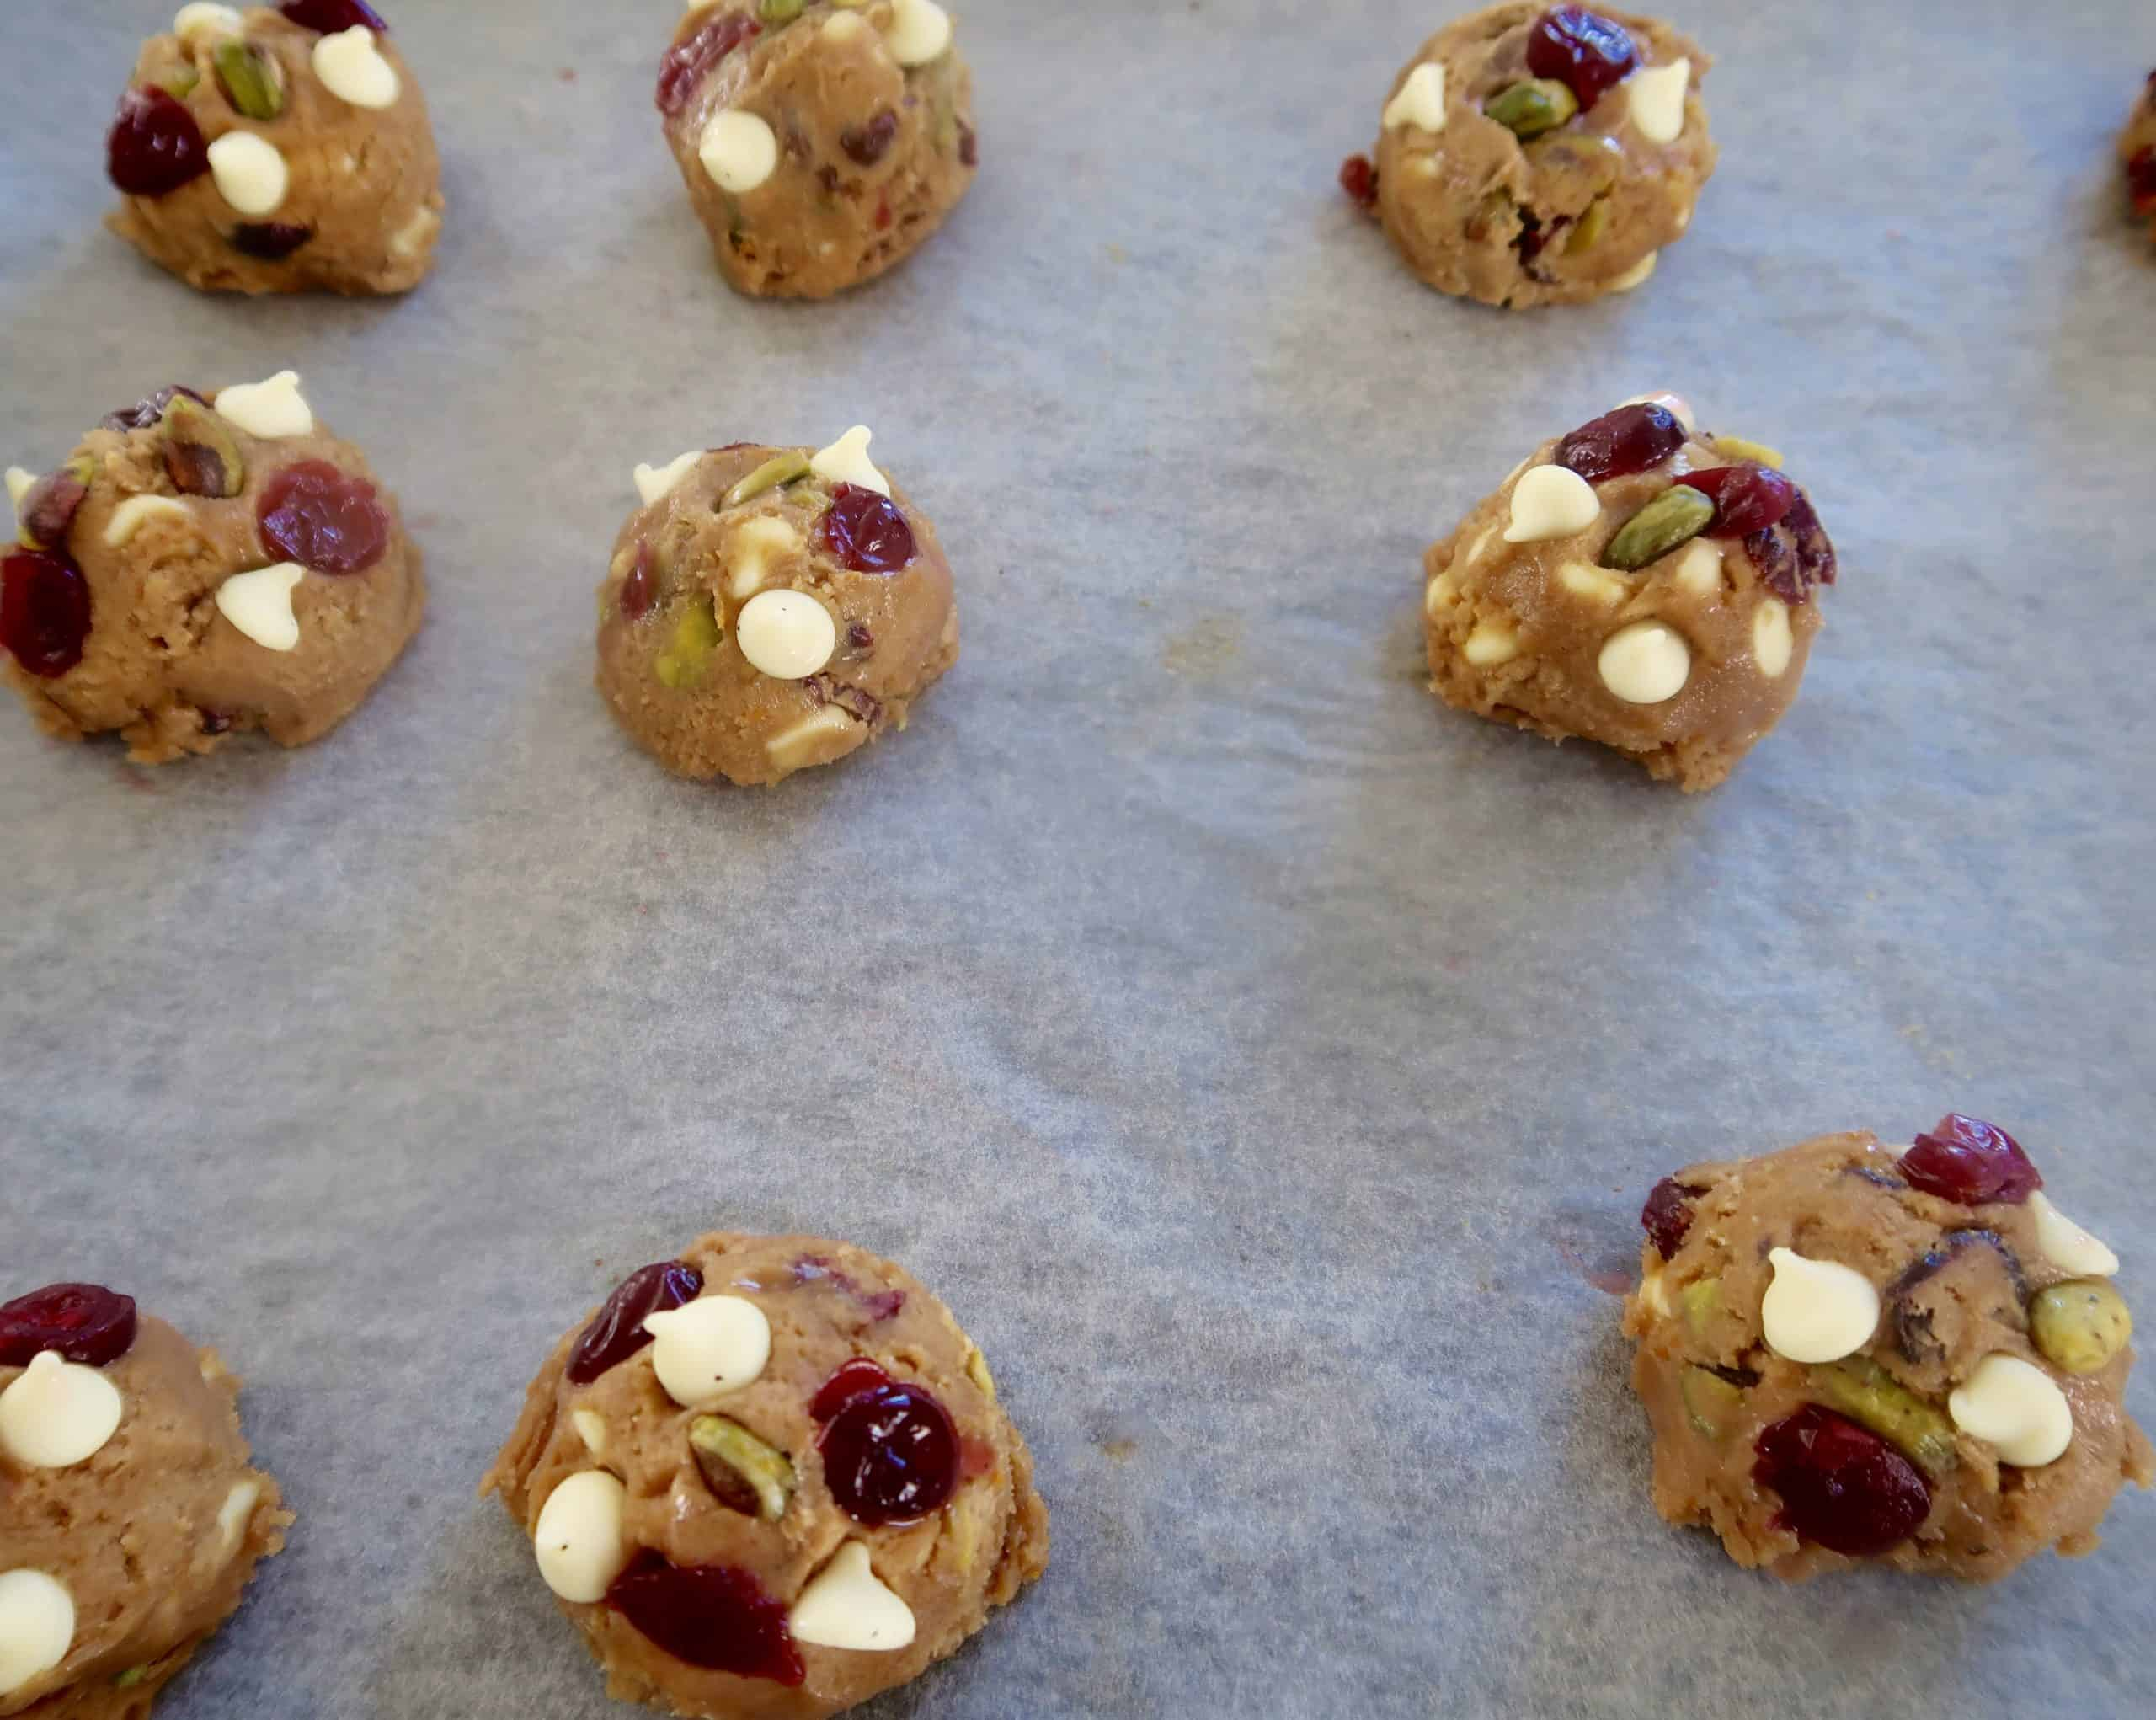 cranberry, white chocolate and pistachio cookies scooped out on baking paper with extra cranberries, pistachio and white chocolate buttons added to cookie